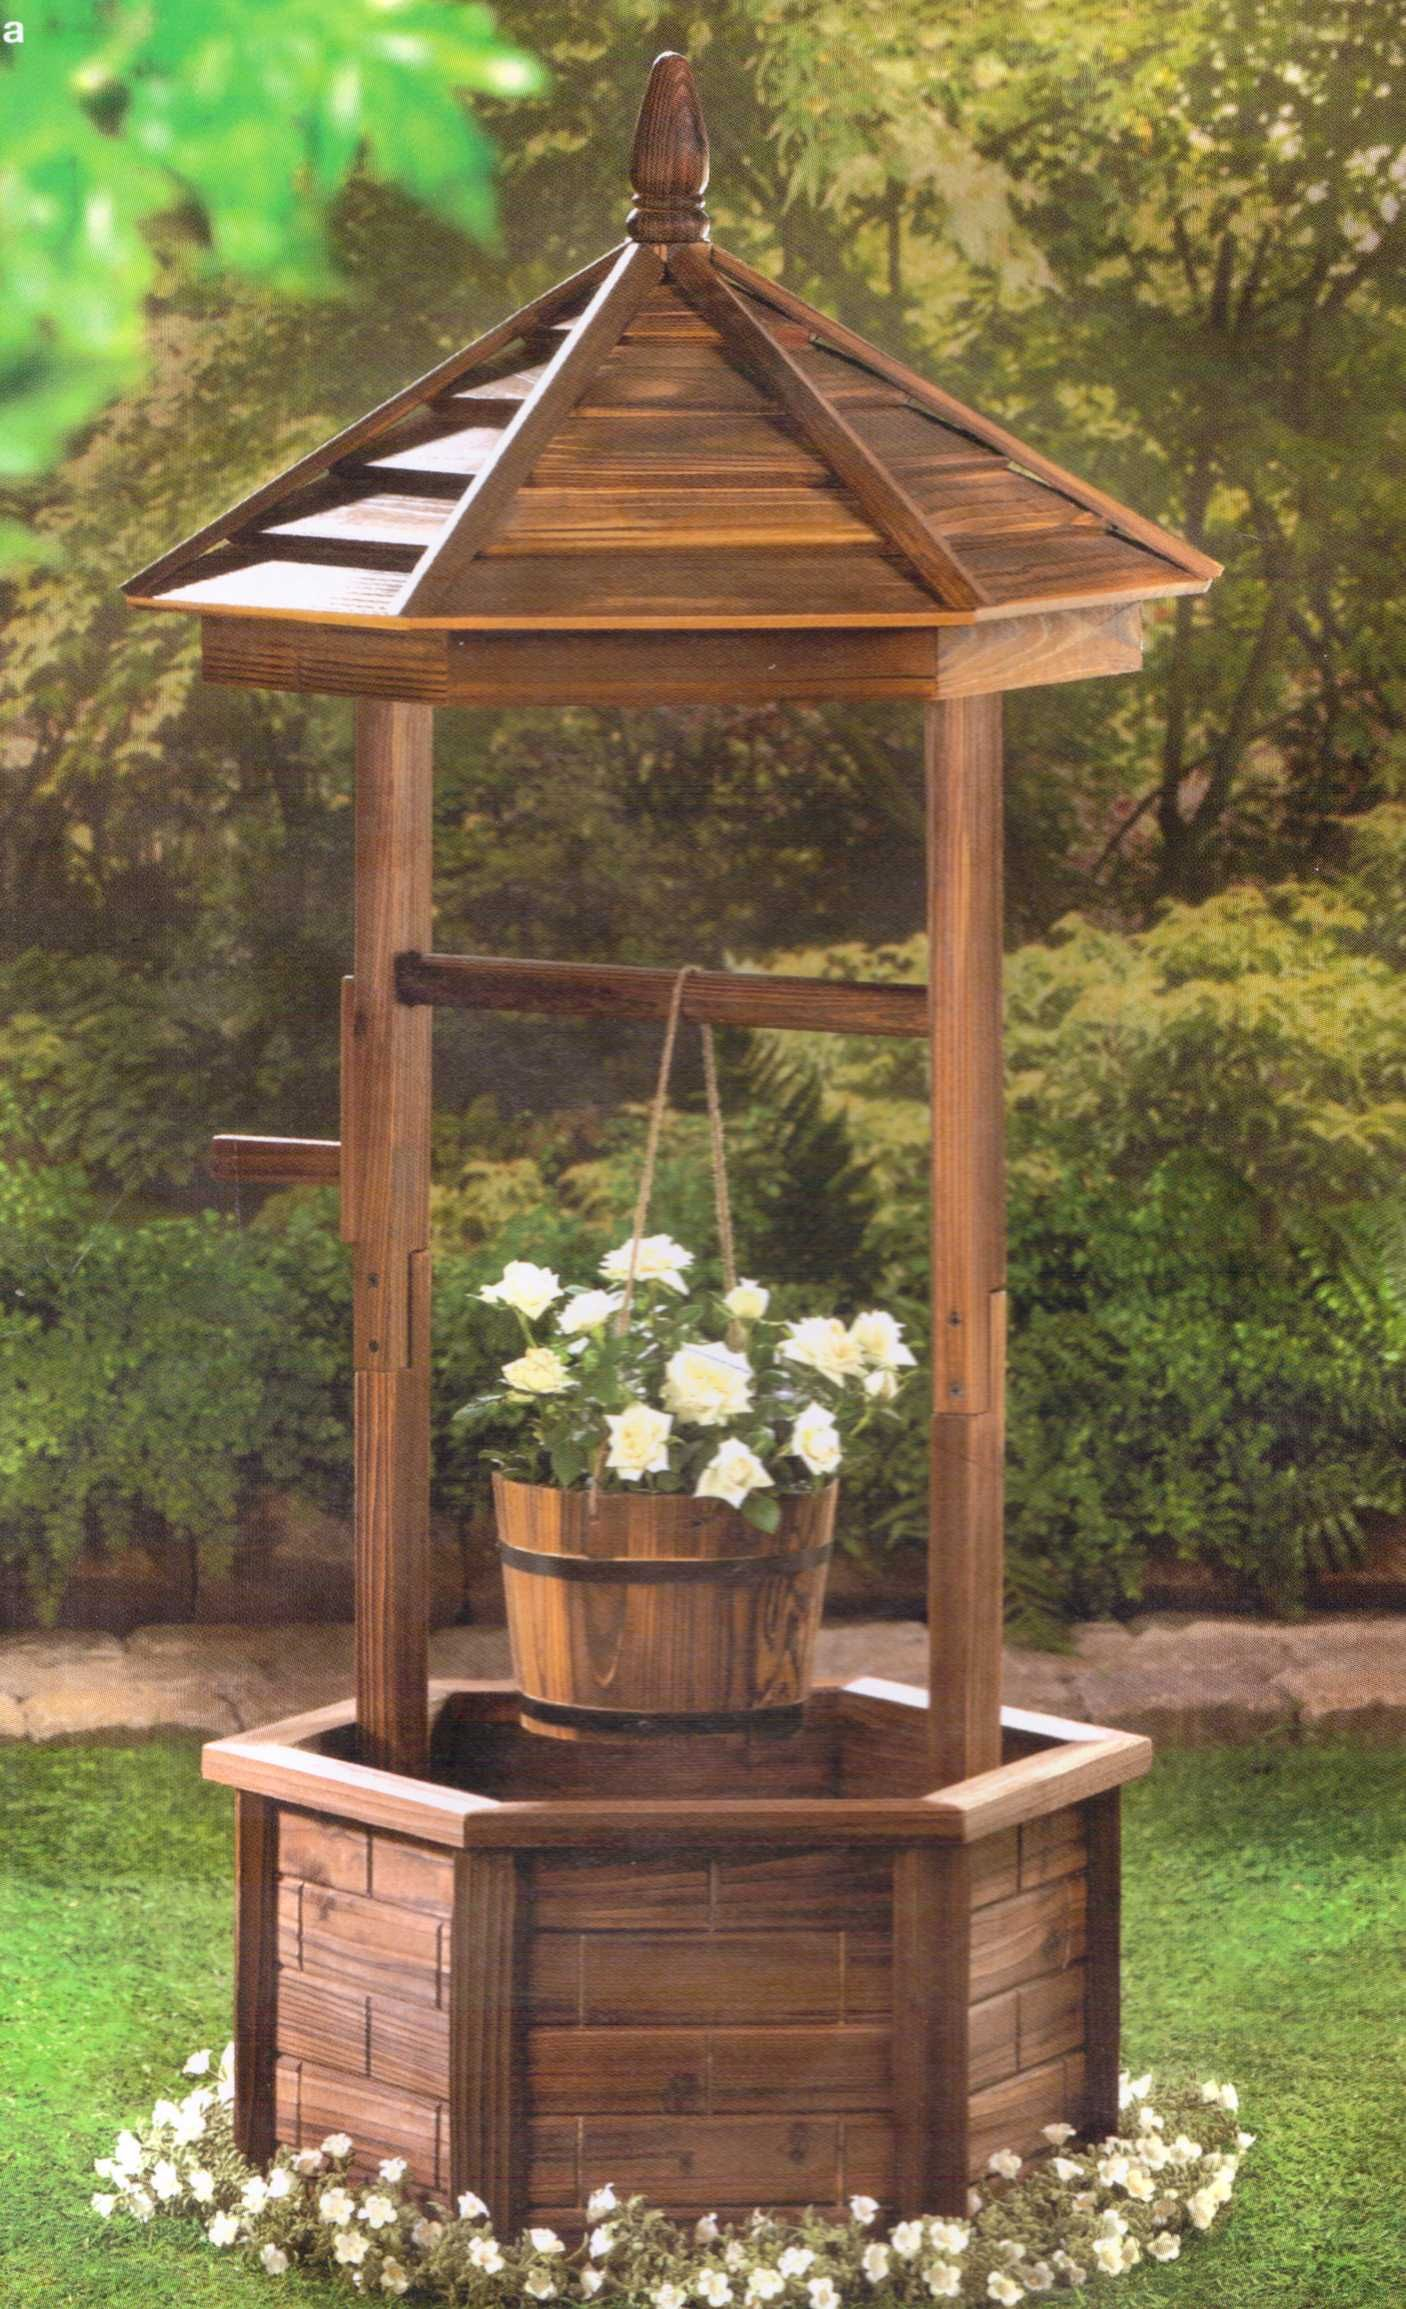 Rustic Wishing Well Flower Planter / Lawn Decoration,Garden, Outdoors, New